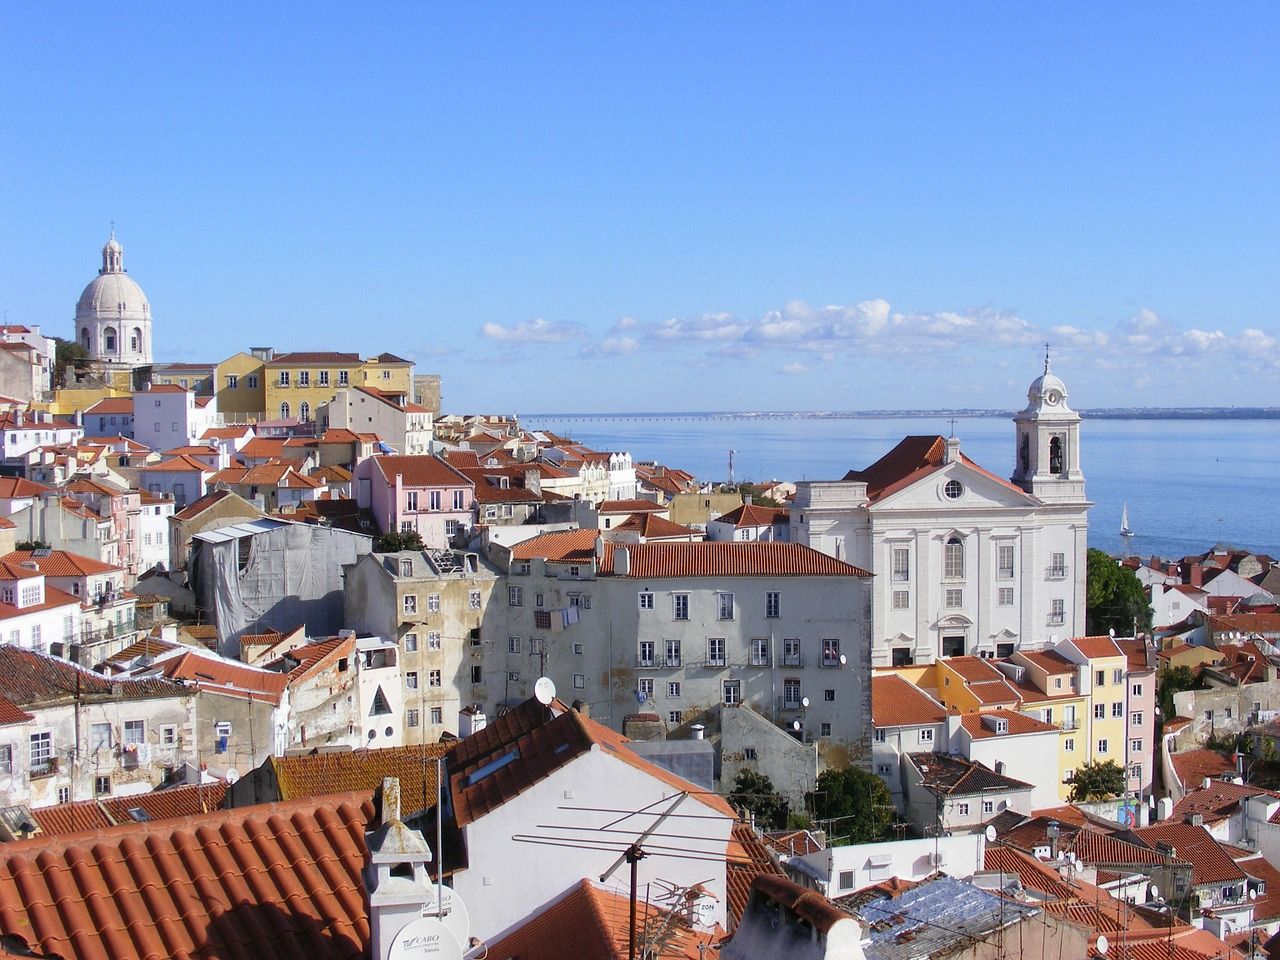 Alfama's hillside is one of many covered in tumbledown houses and historical buildings © Pixabay